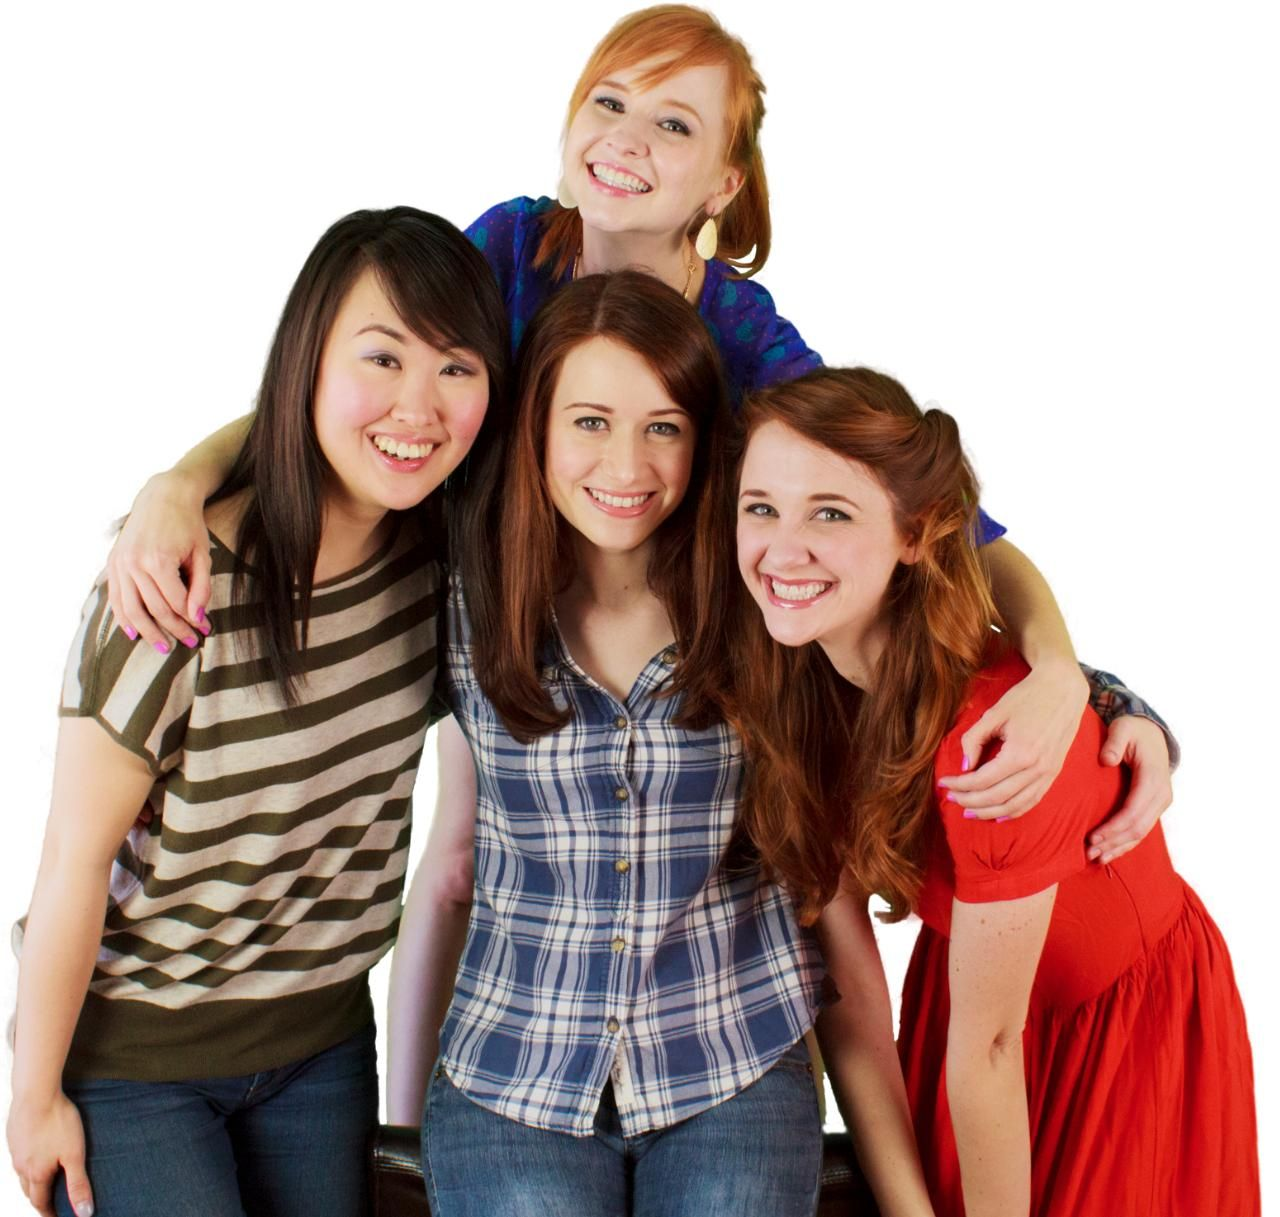 The Lizzie Bennet Diaries Kickstarter project. Lizzie, Charlotte, Lydia and Jane